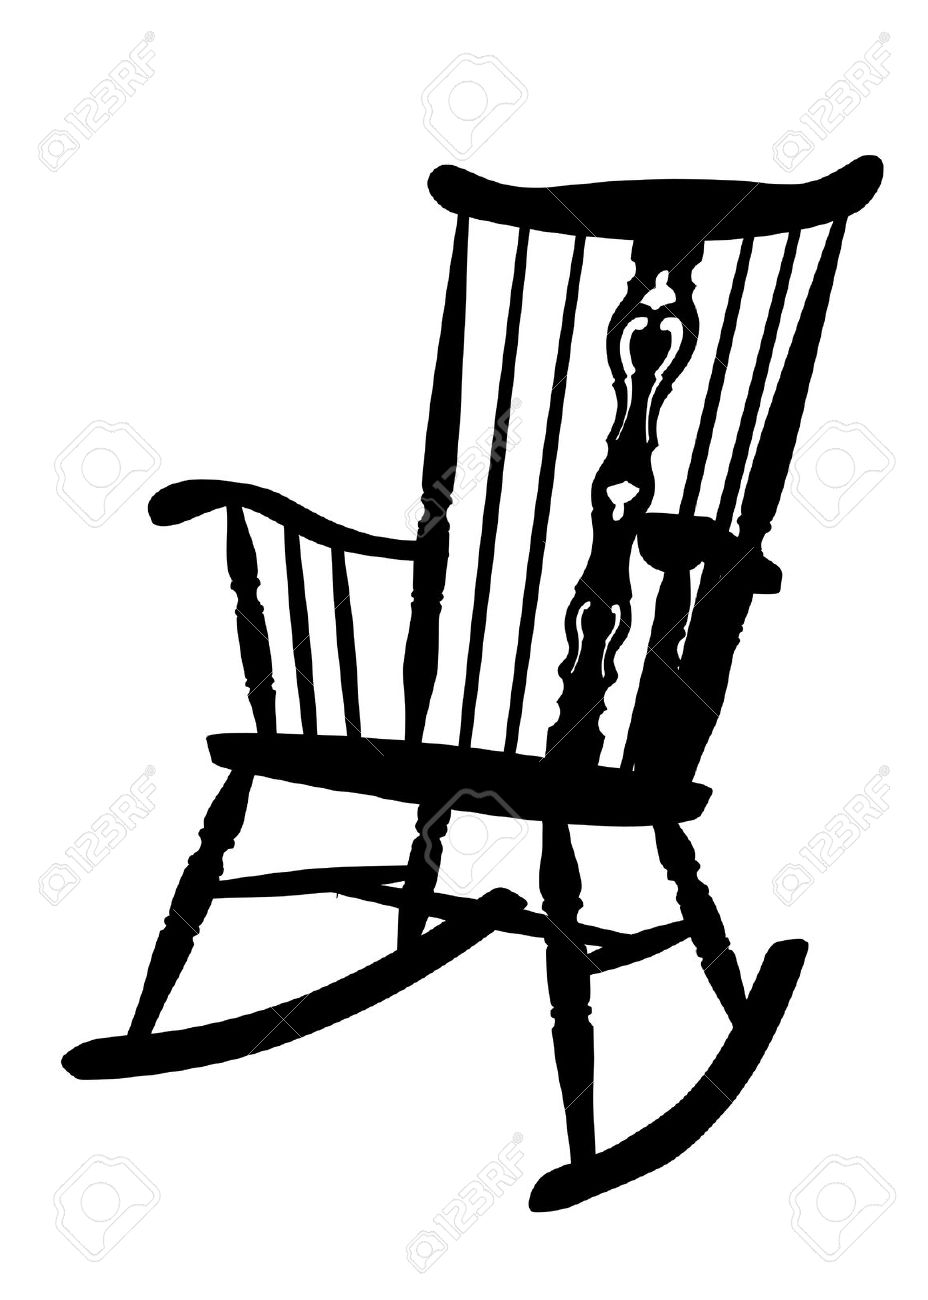 Baby Rocking Chair Clipart Rocking chairs ...